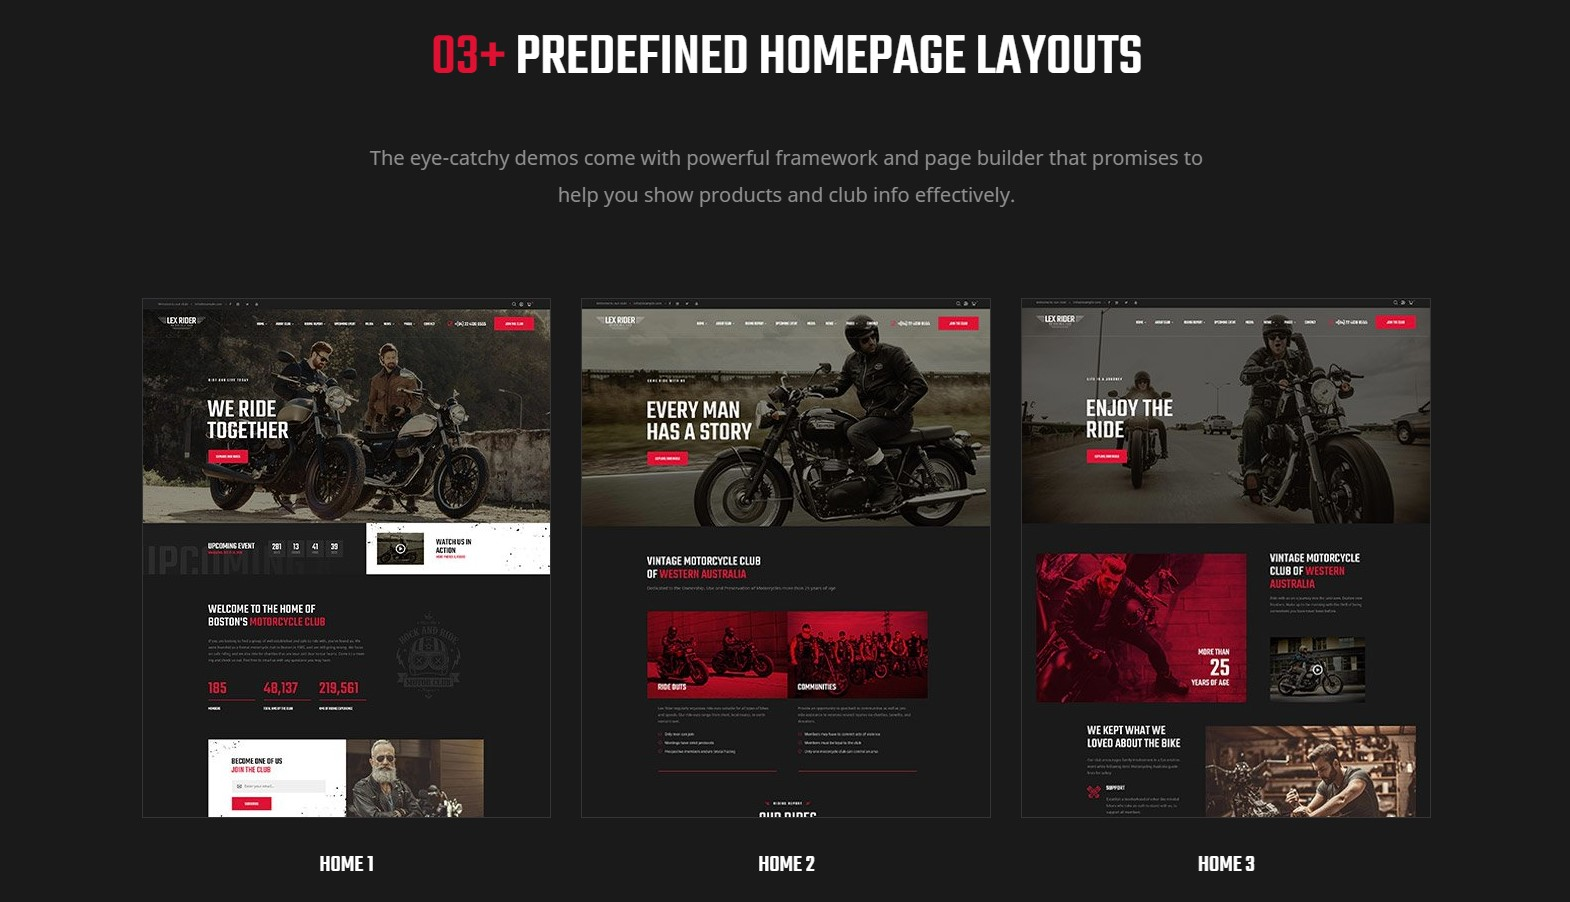 LexRider - best Motorcycle WordPress Theme - Stunning 03+ Homepage Layouts for Biker & MotorCycle Club Homepages